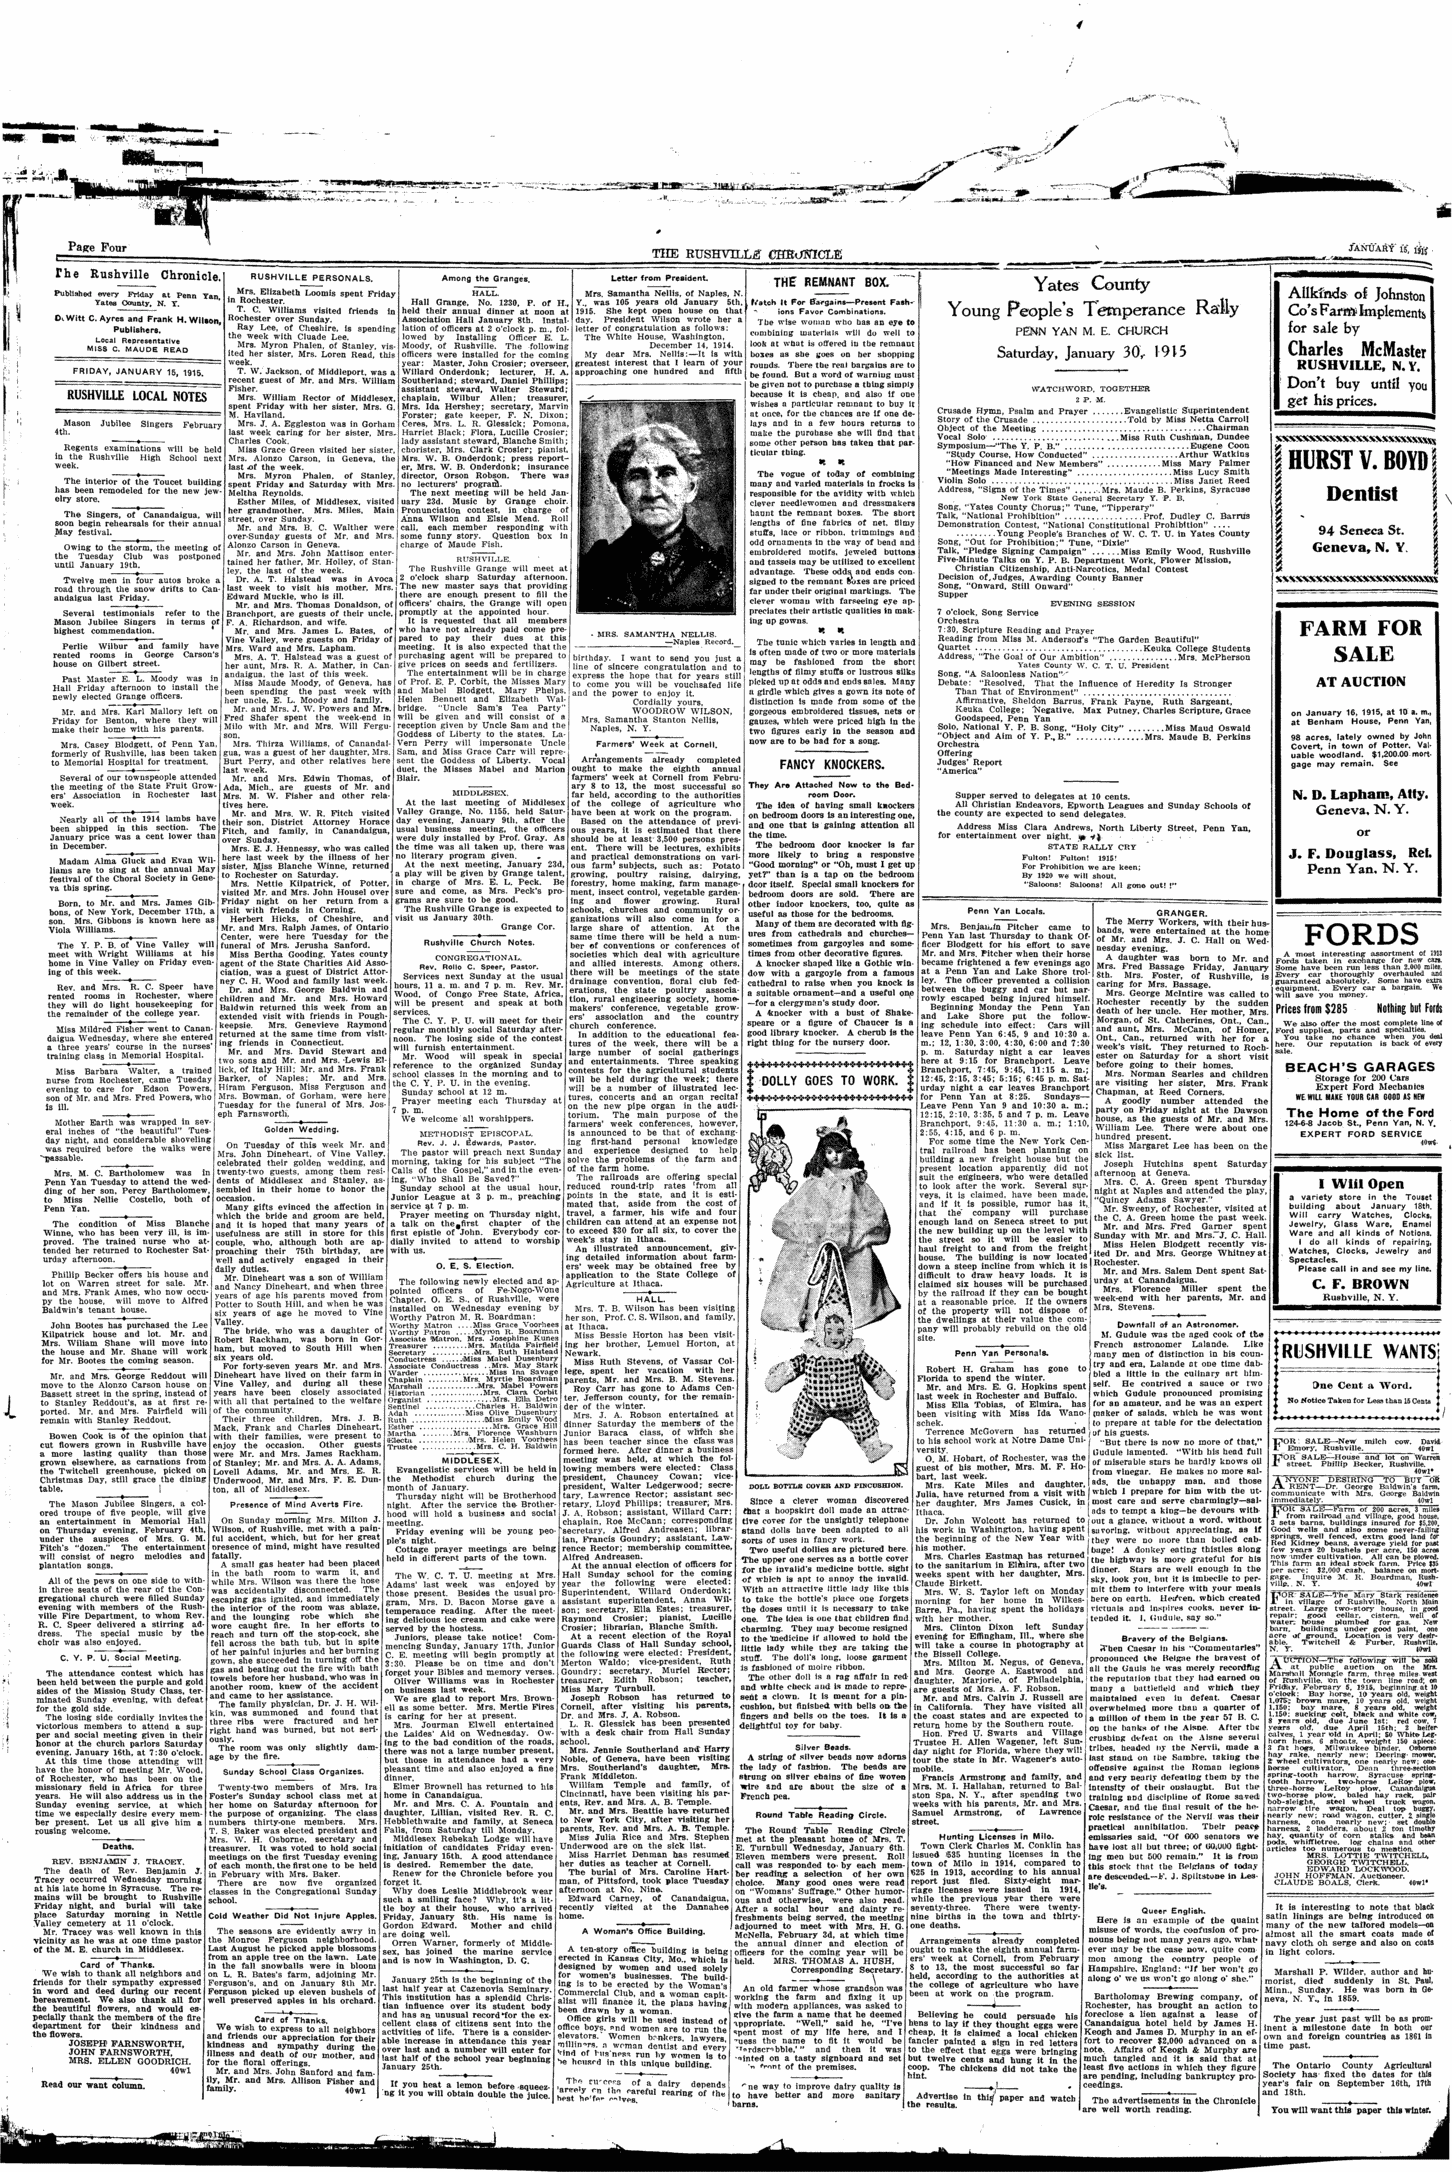 The Rushville chronicle  (Rushville, N Y